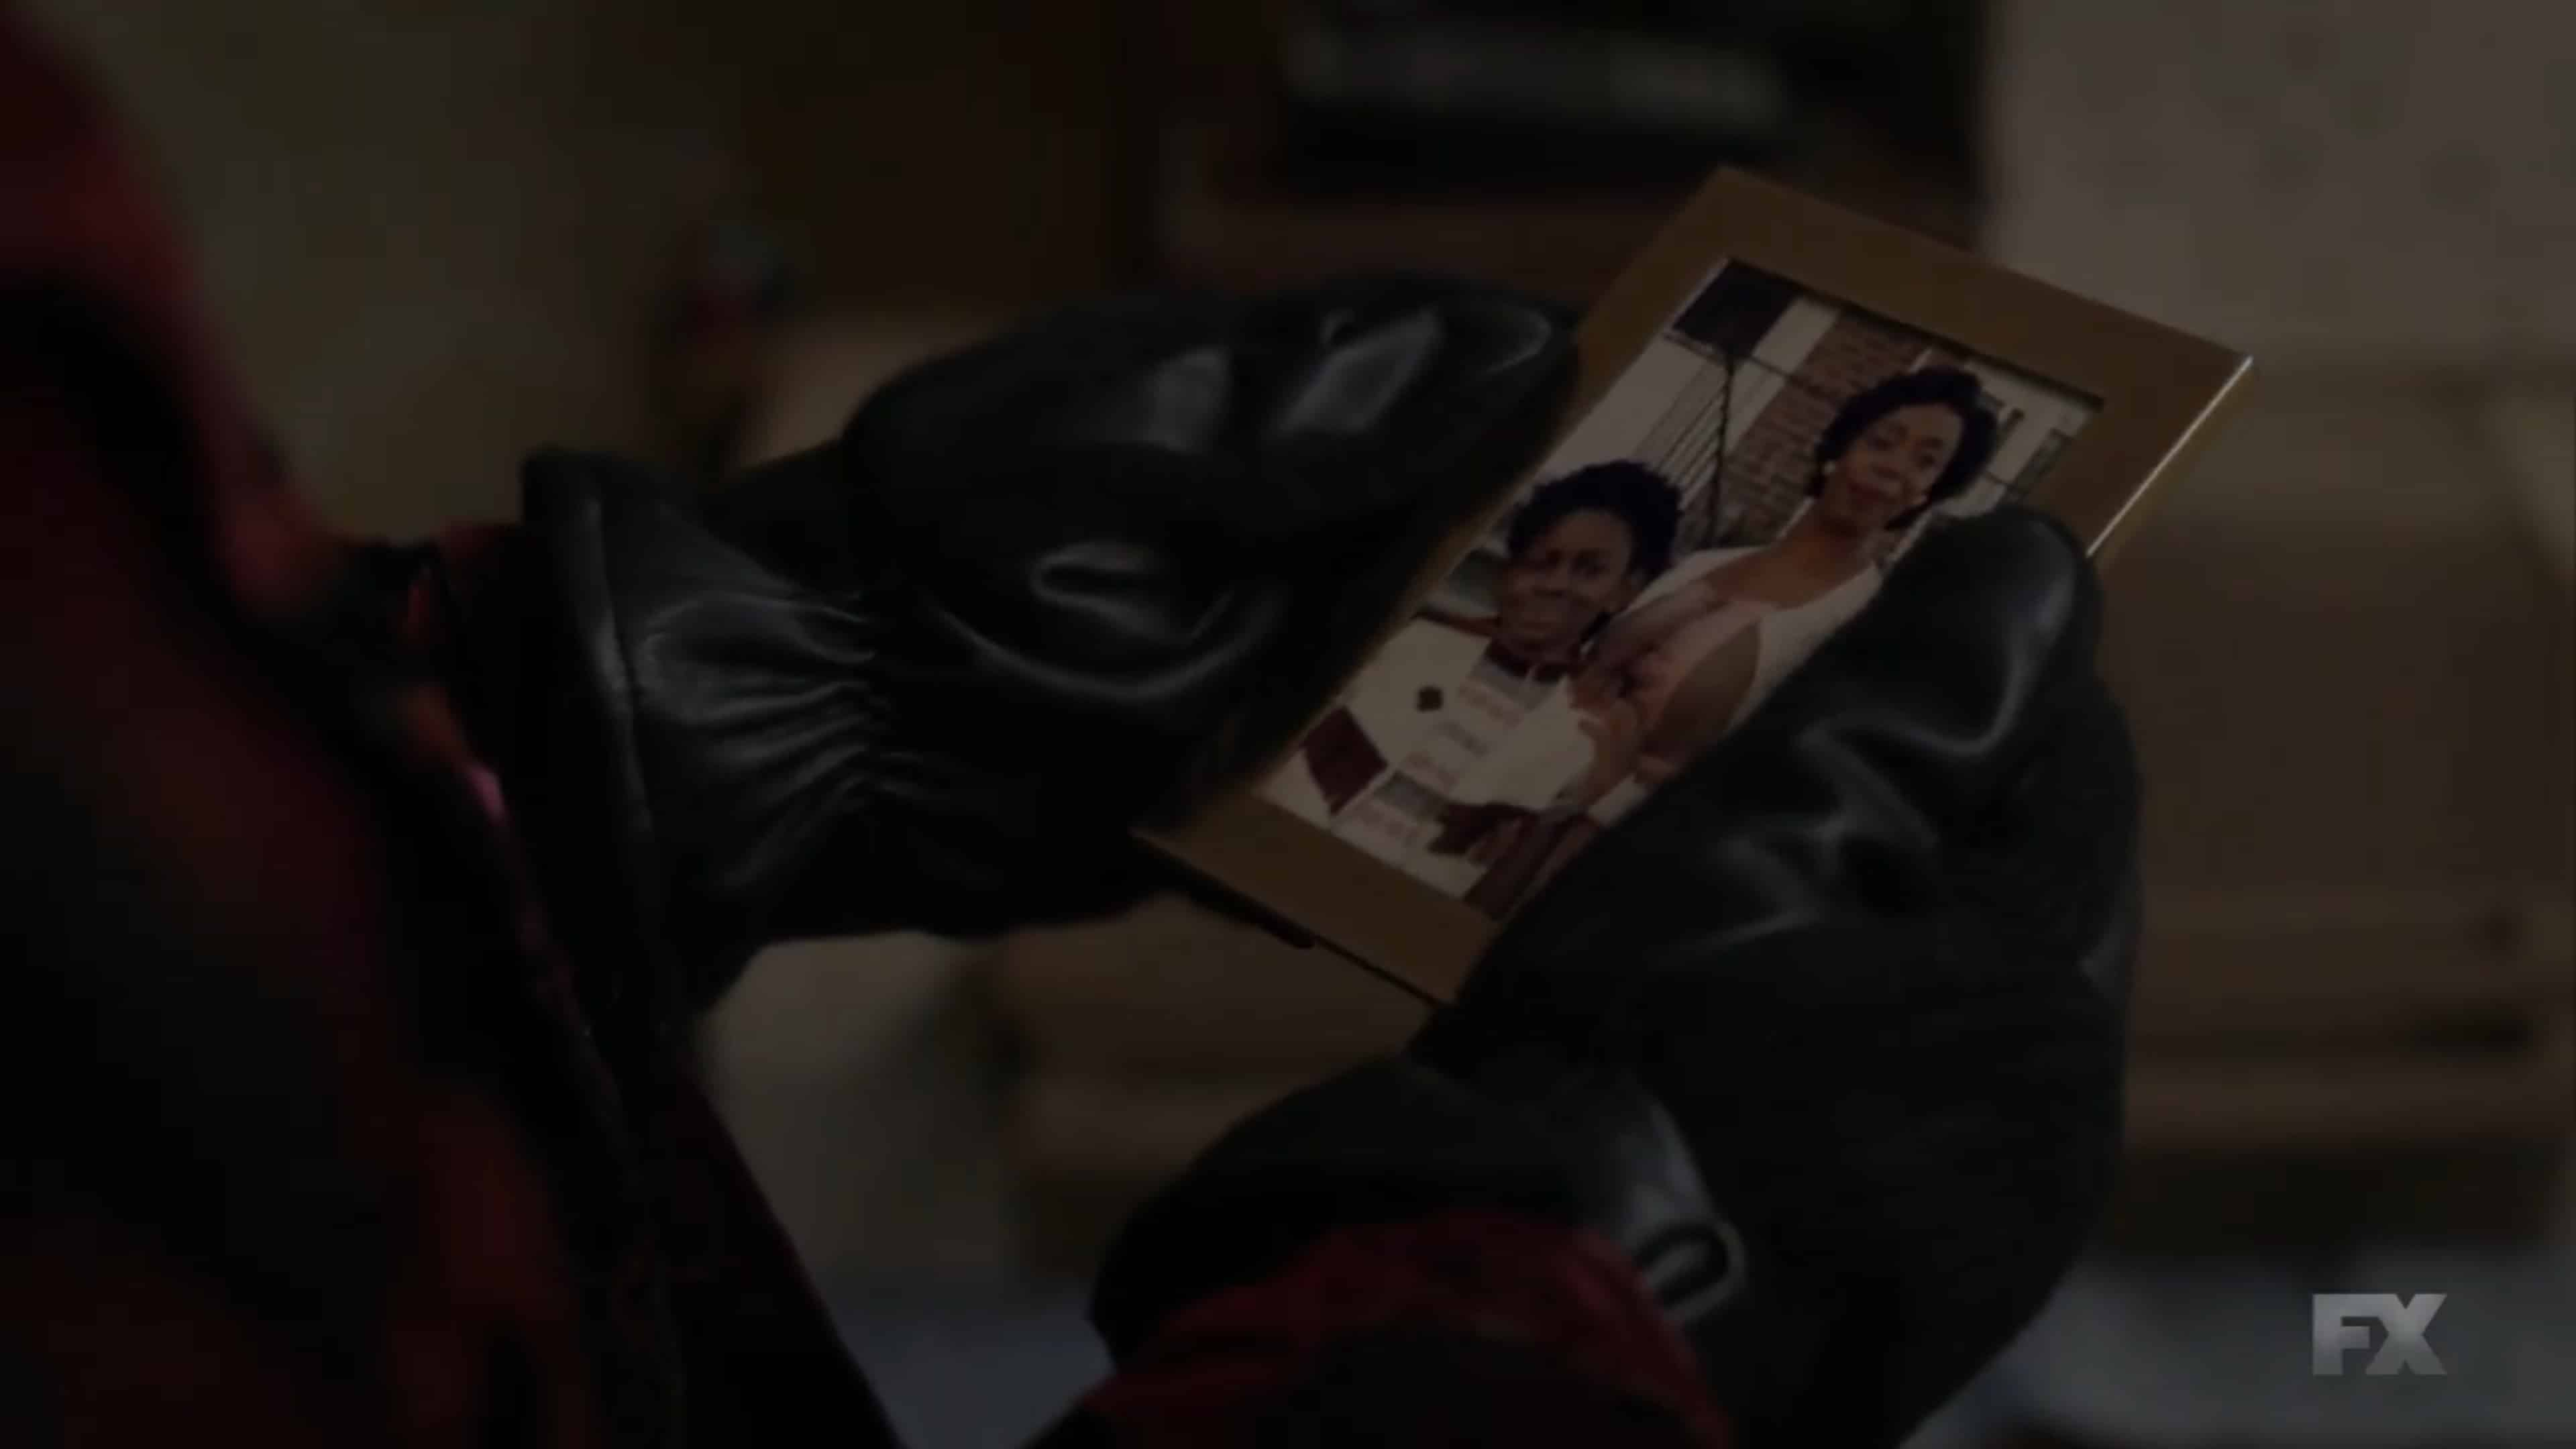 Elektra looking at a younger picture of herself with her mom